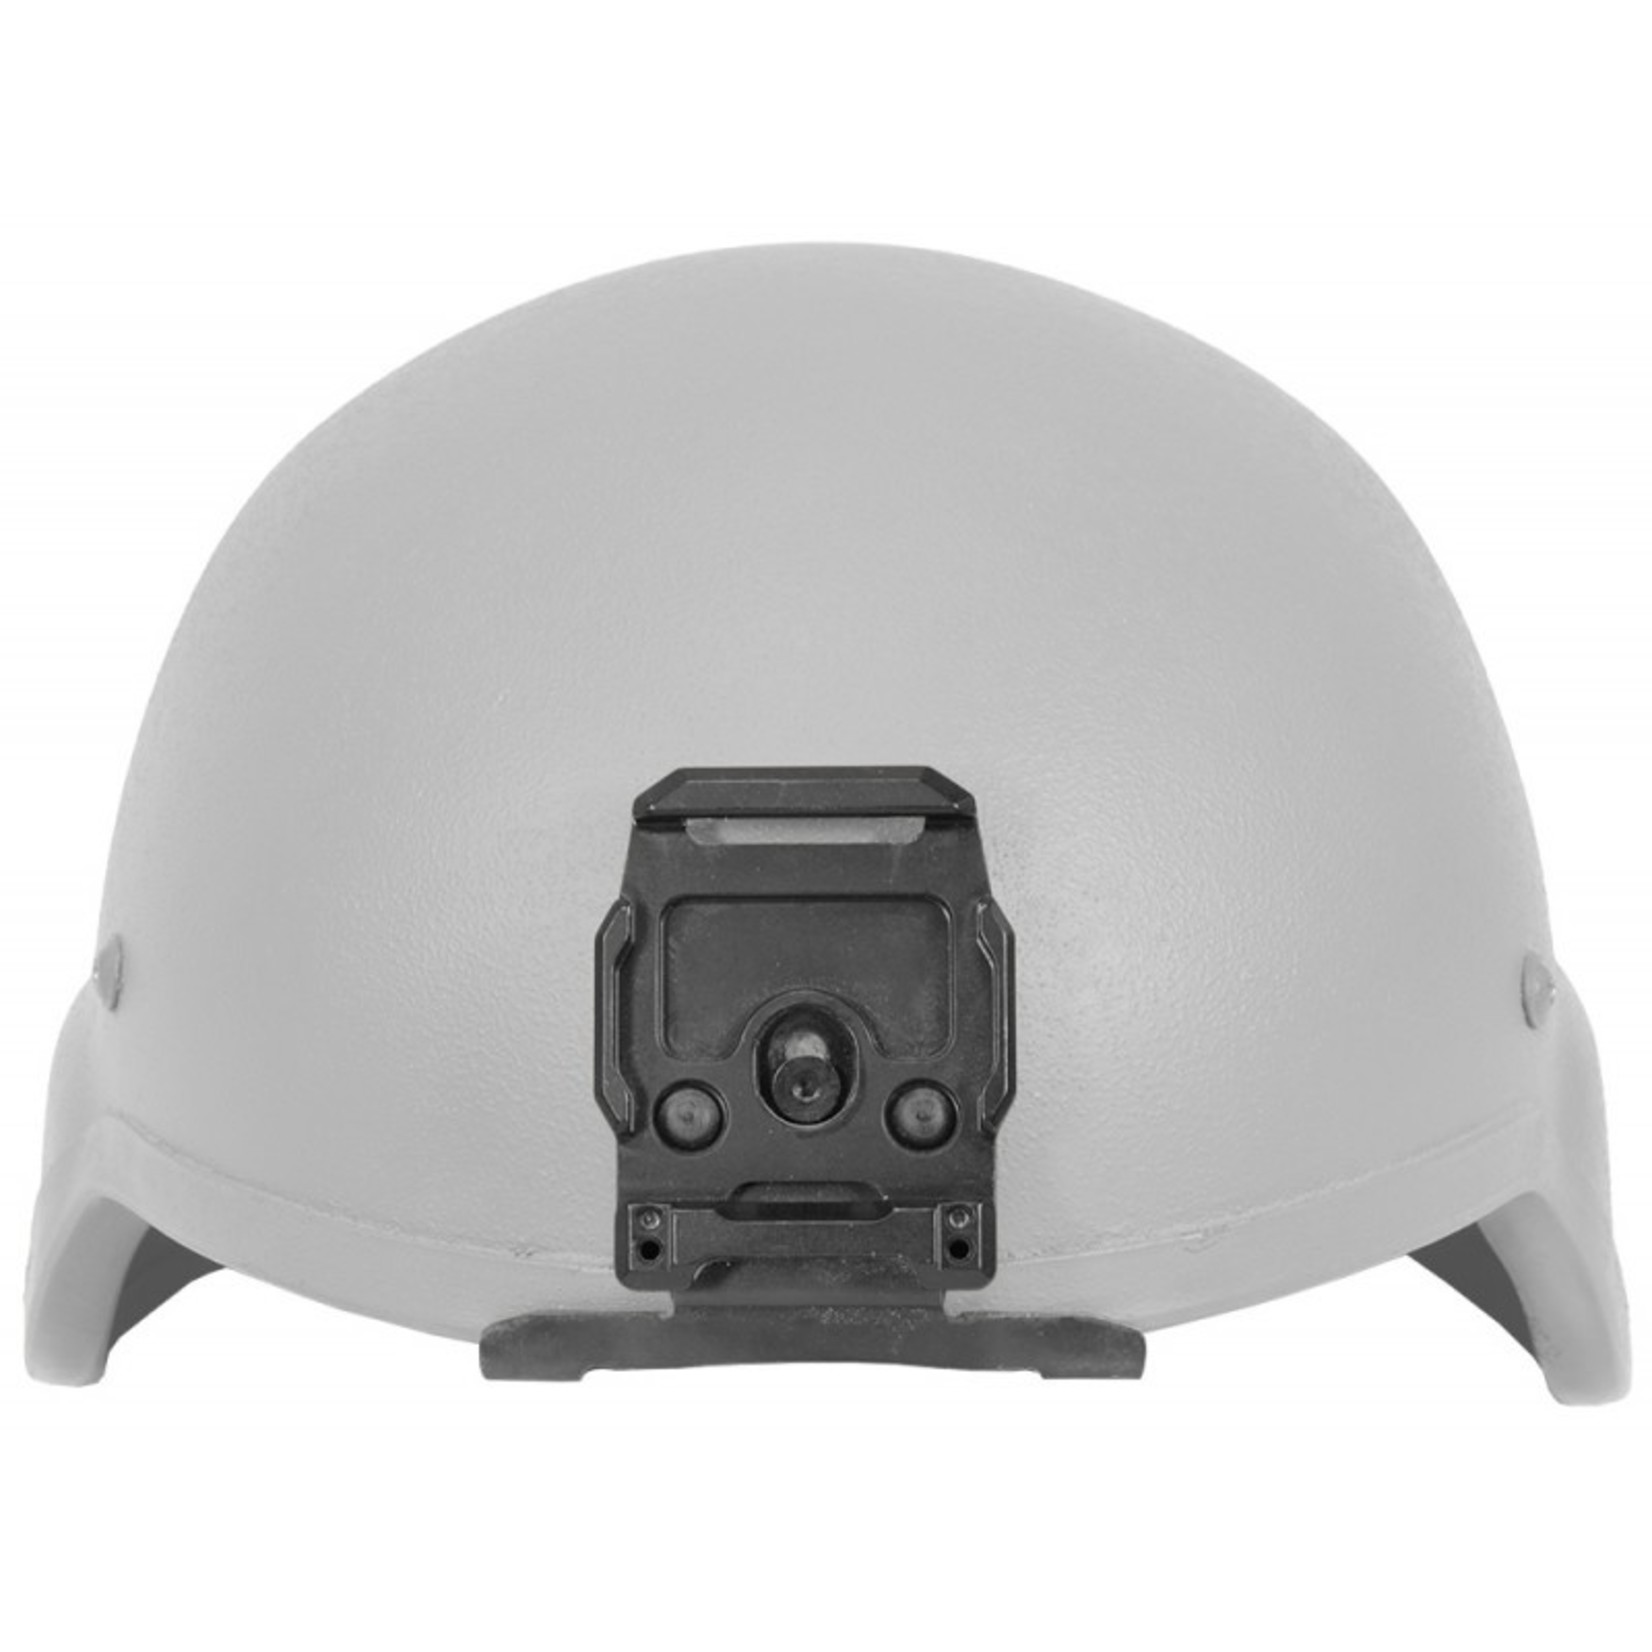 CADEX DEFENCE ONE HOLE MICH NVG SHROUD